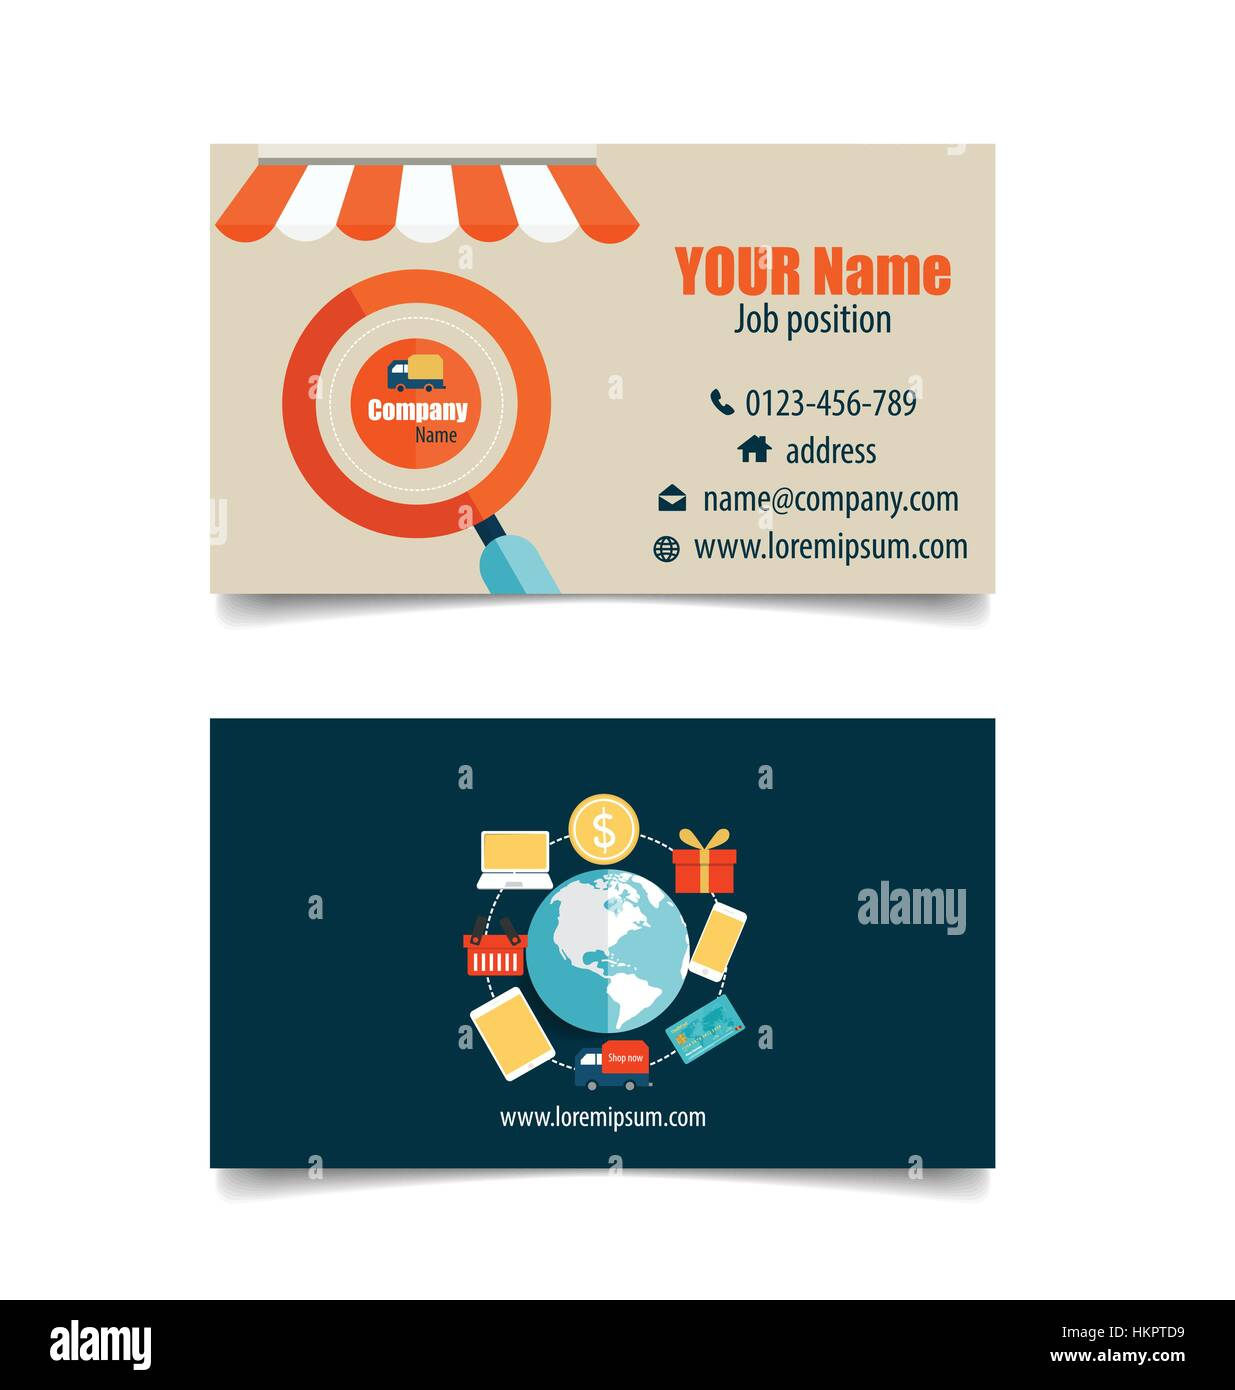 Modern Business Card Template With Business Concept Online - Online business card templates